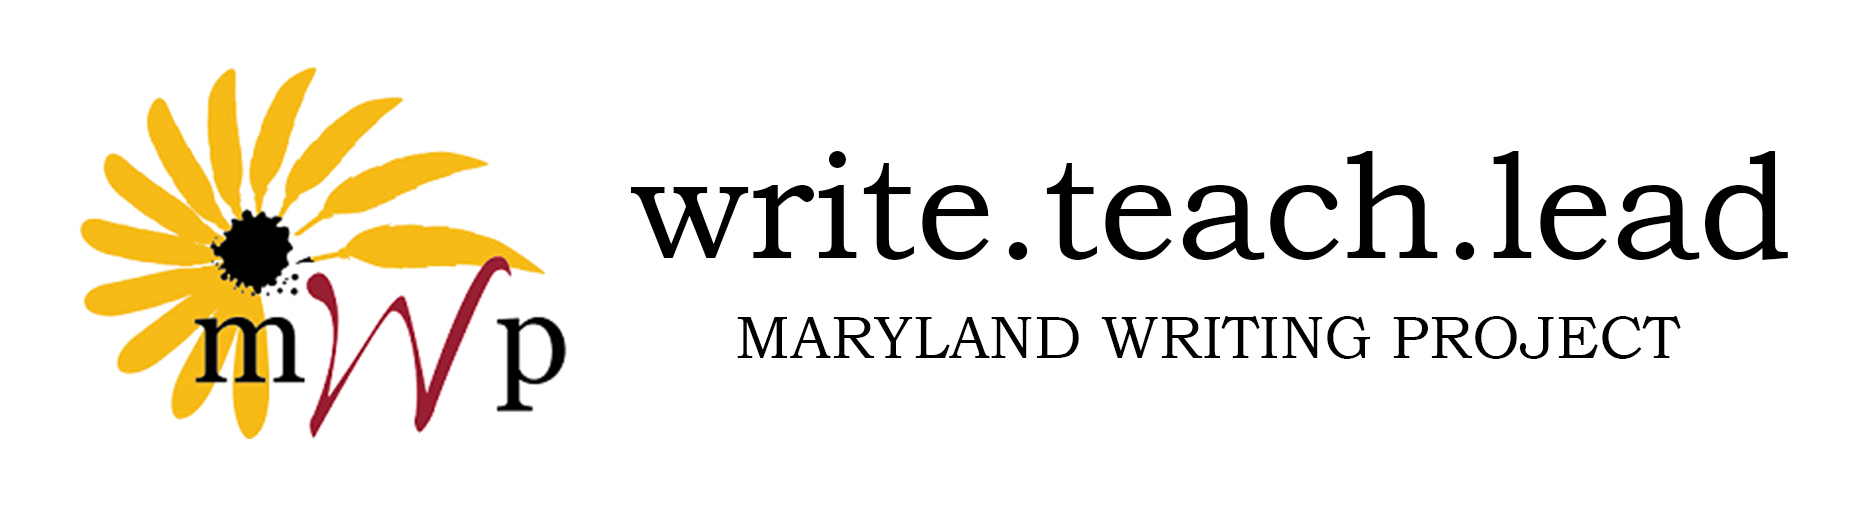 write.teach.lead